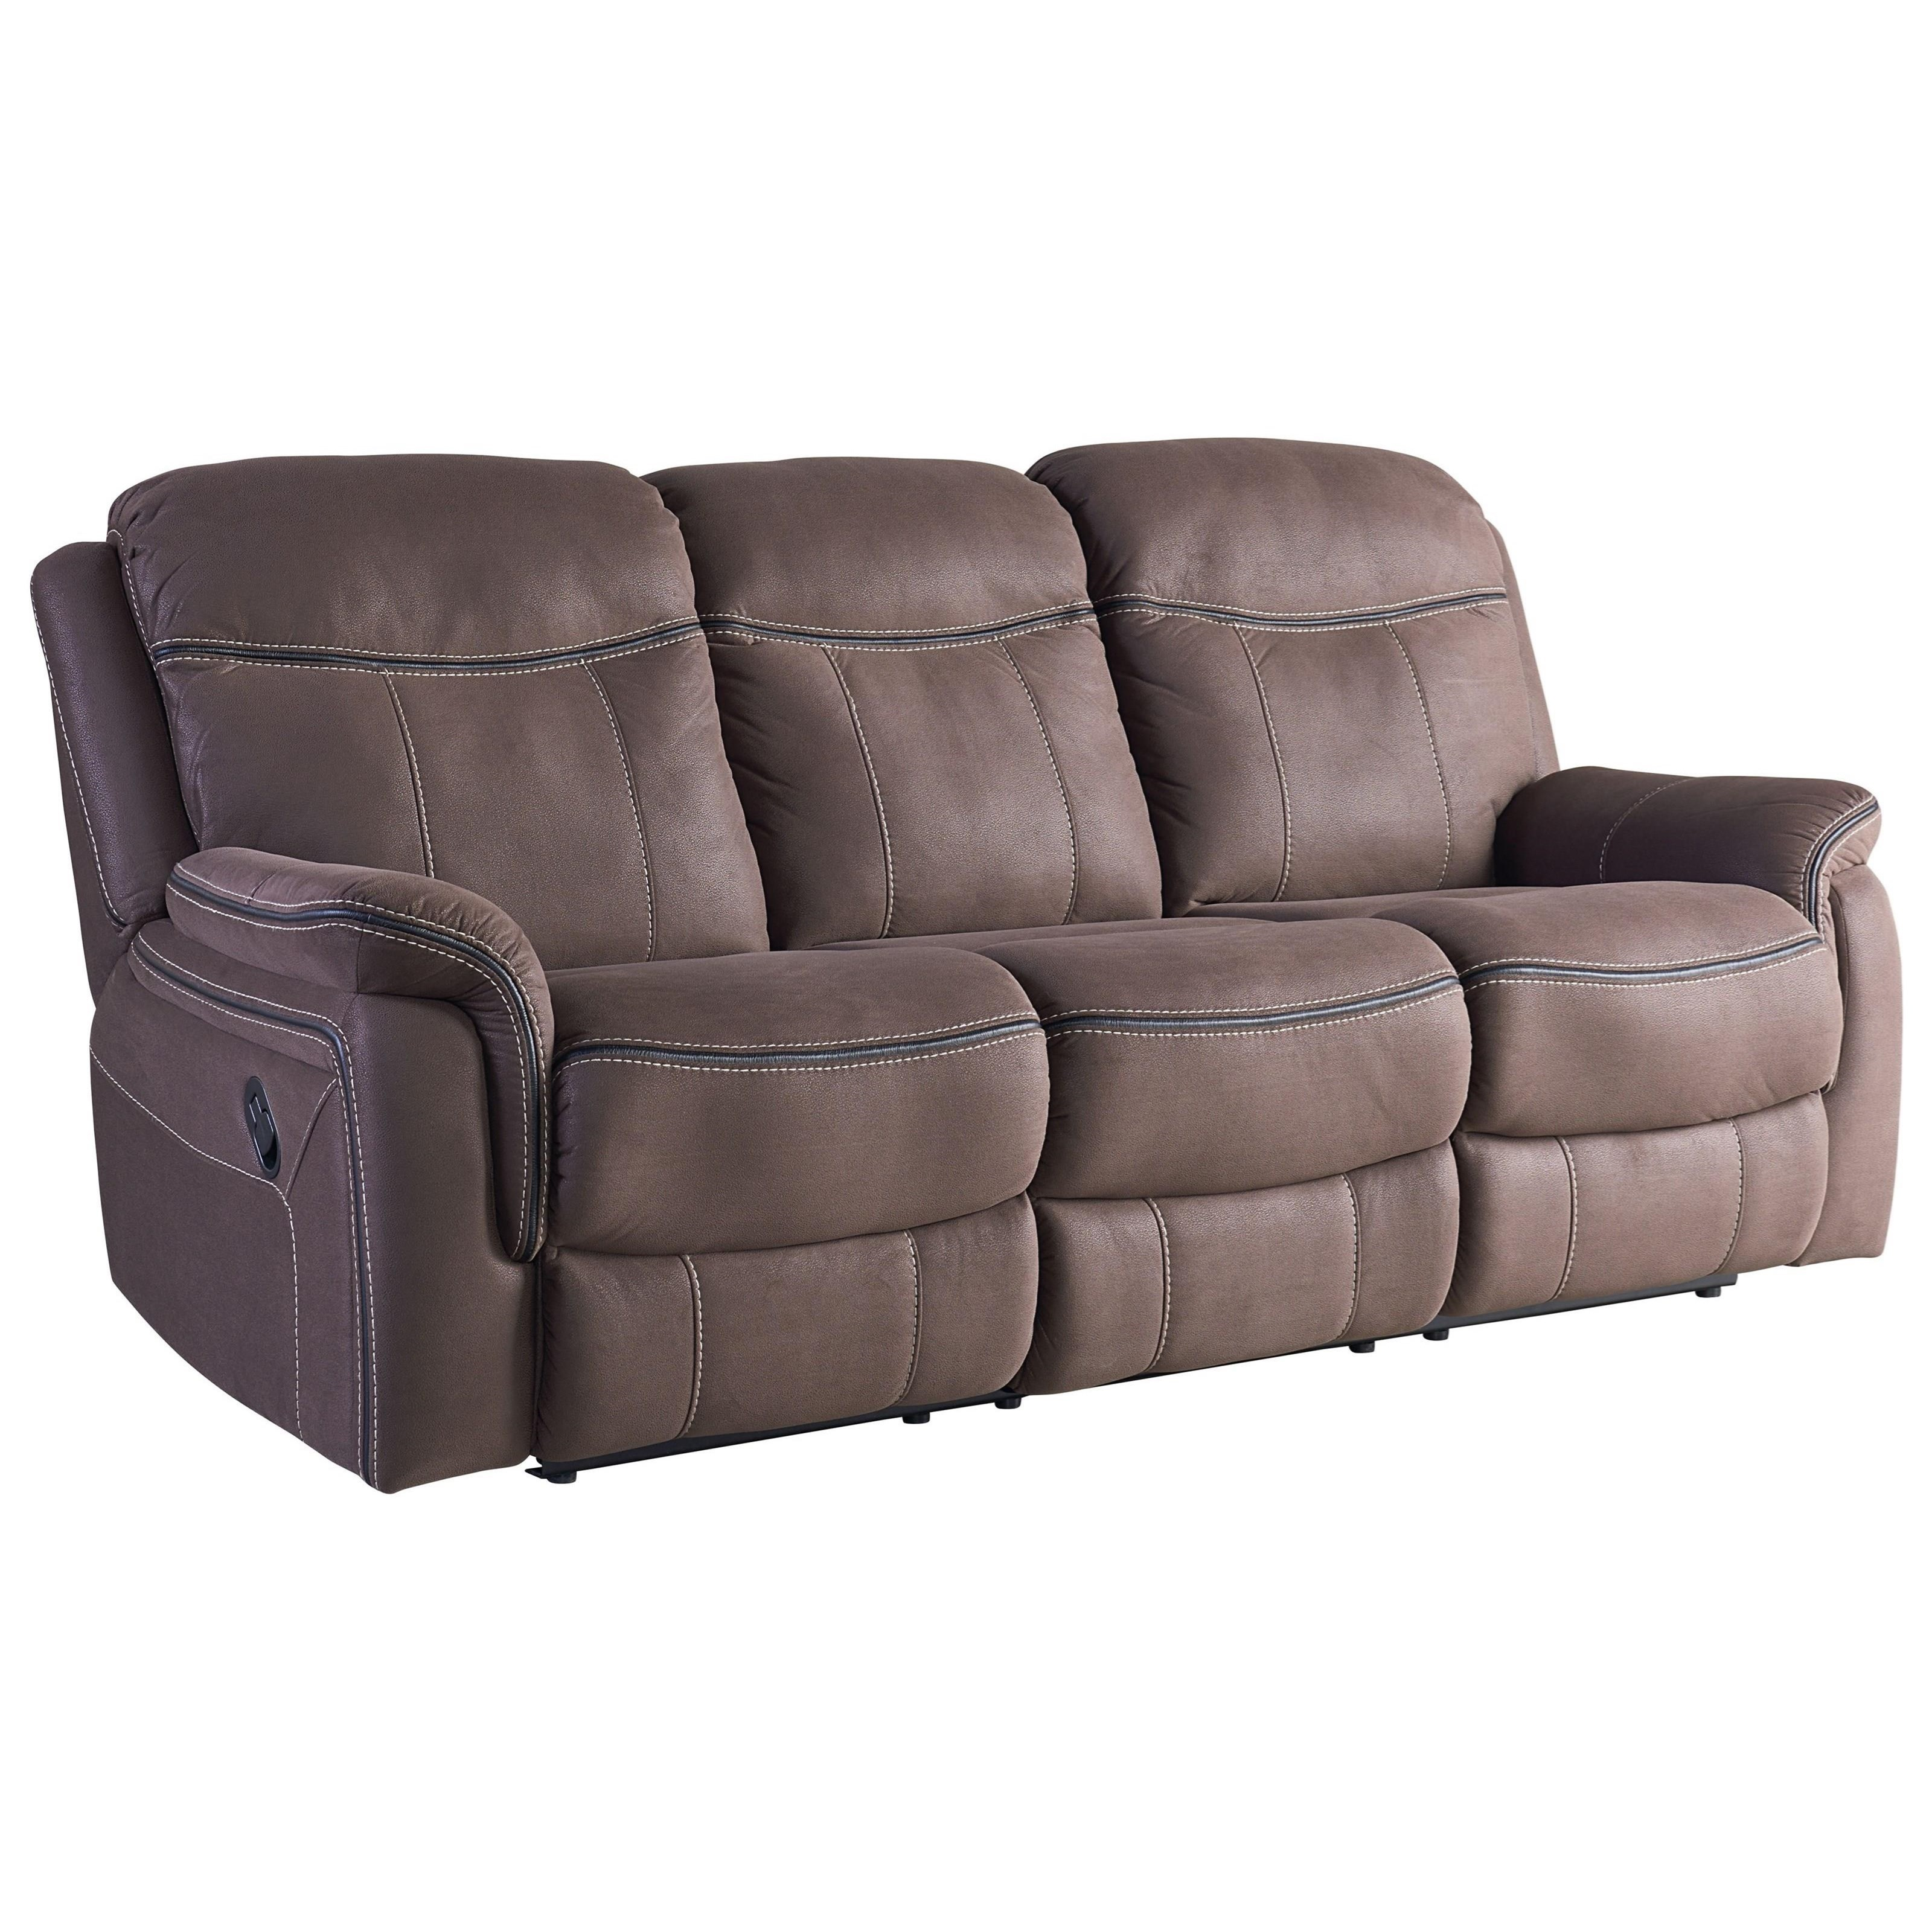 Champion Reclining Sofa by Standard Furniture at Rooms for Less